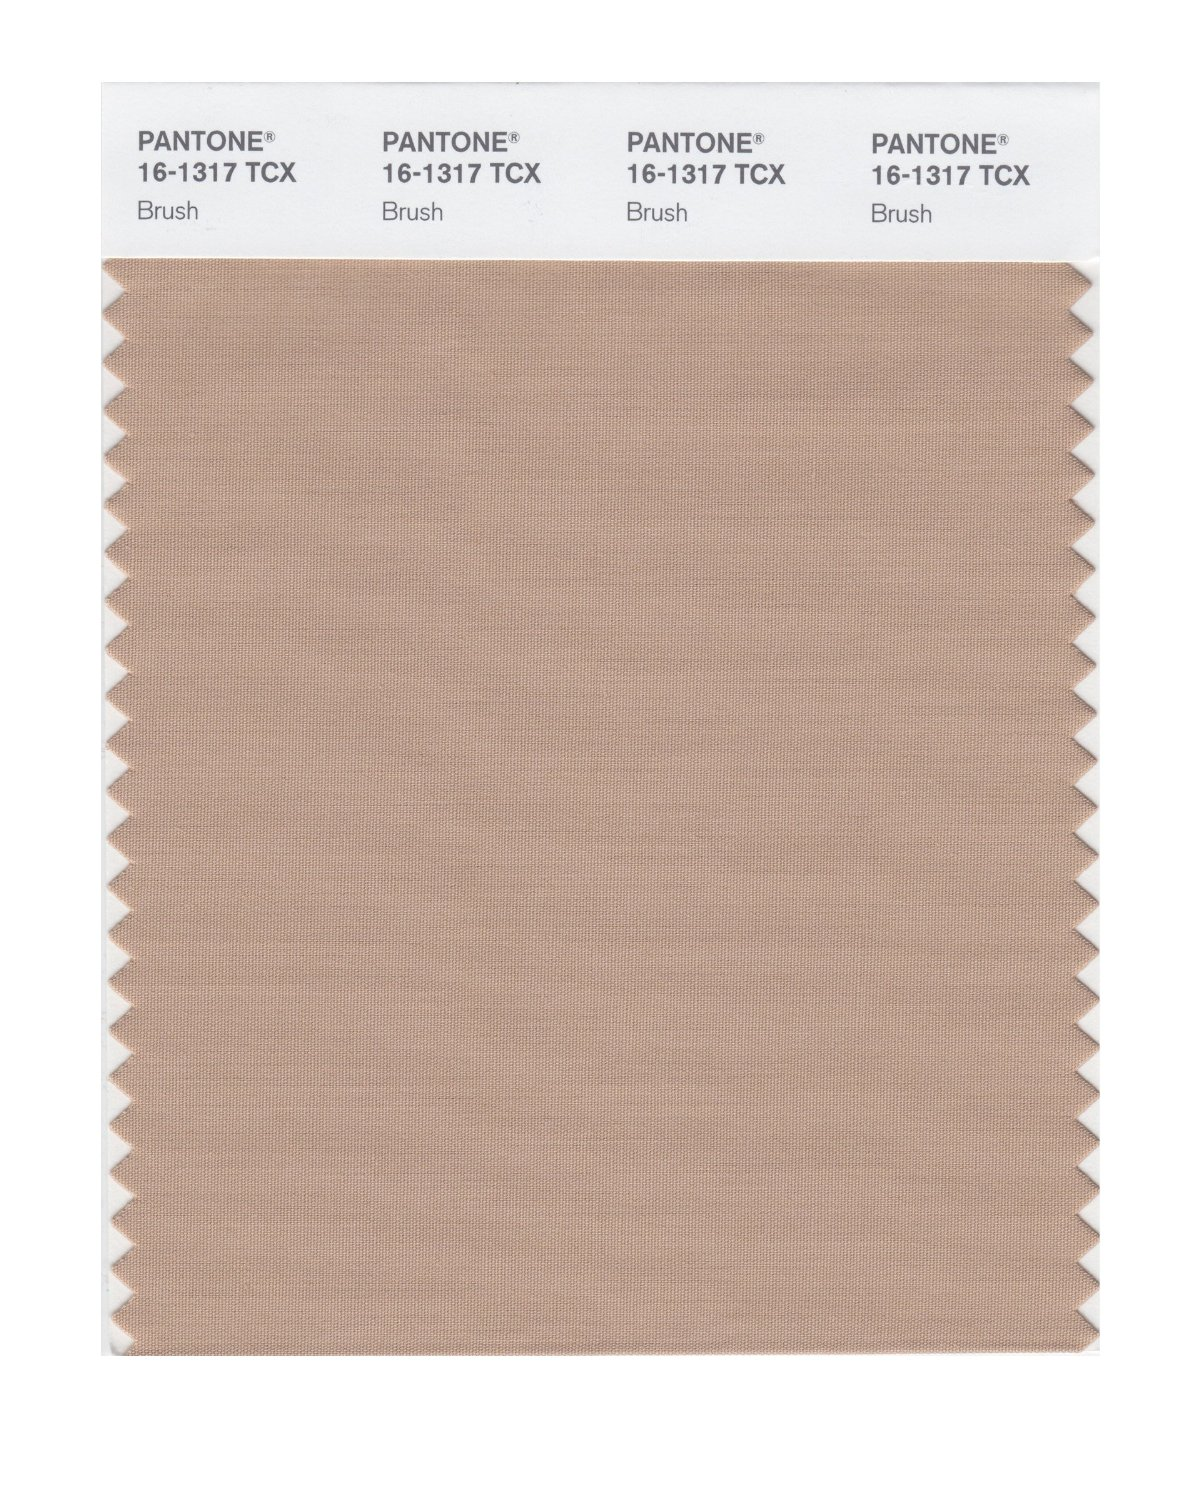 Pantone Smart Swatch 16-1317 Brush